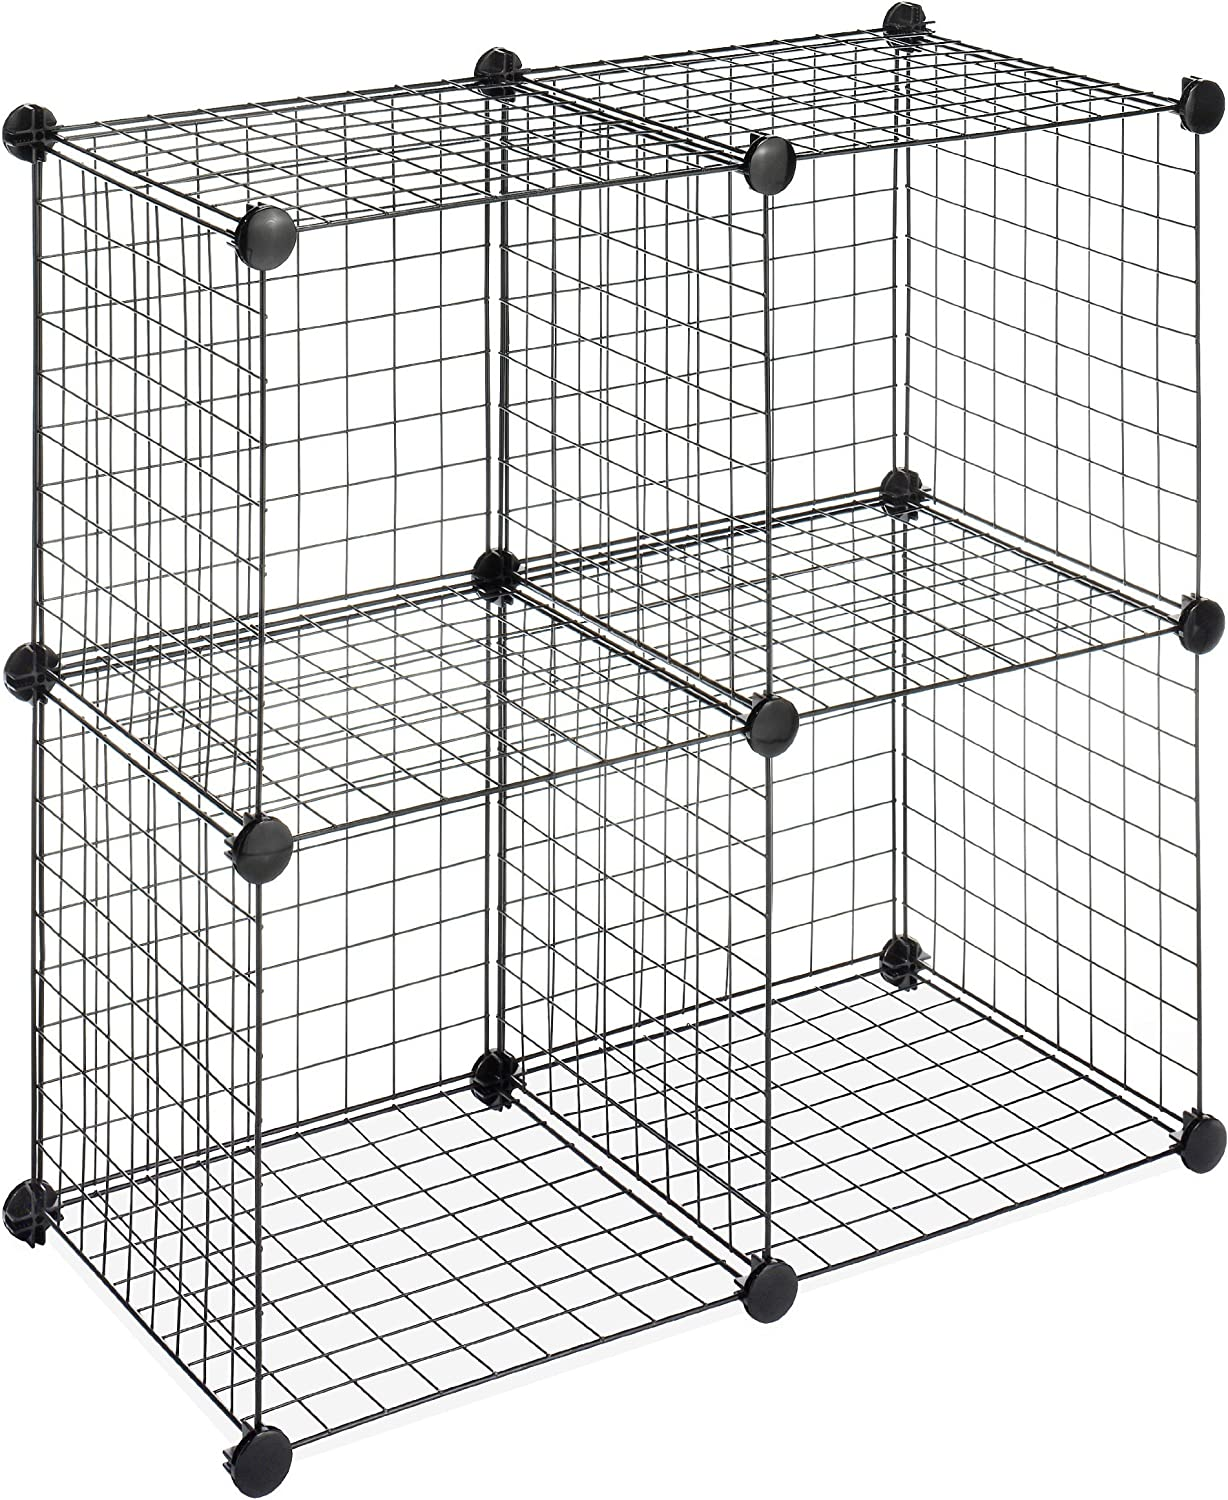 Whitmor Storage Cubes - Stackable Interlocking Wire Shelves -Black on interior shelves, wood shelves, piping shelves, three shelves, plumbing shelves, concrete shelves, kitchen shelves, frame shelves, radiator shelves, parts shelves, security shelves, drywall shelves, blue shelves, welding shelves,